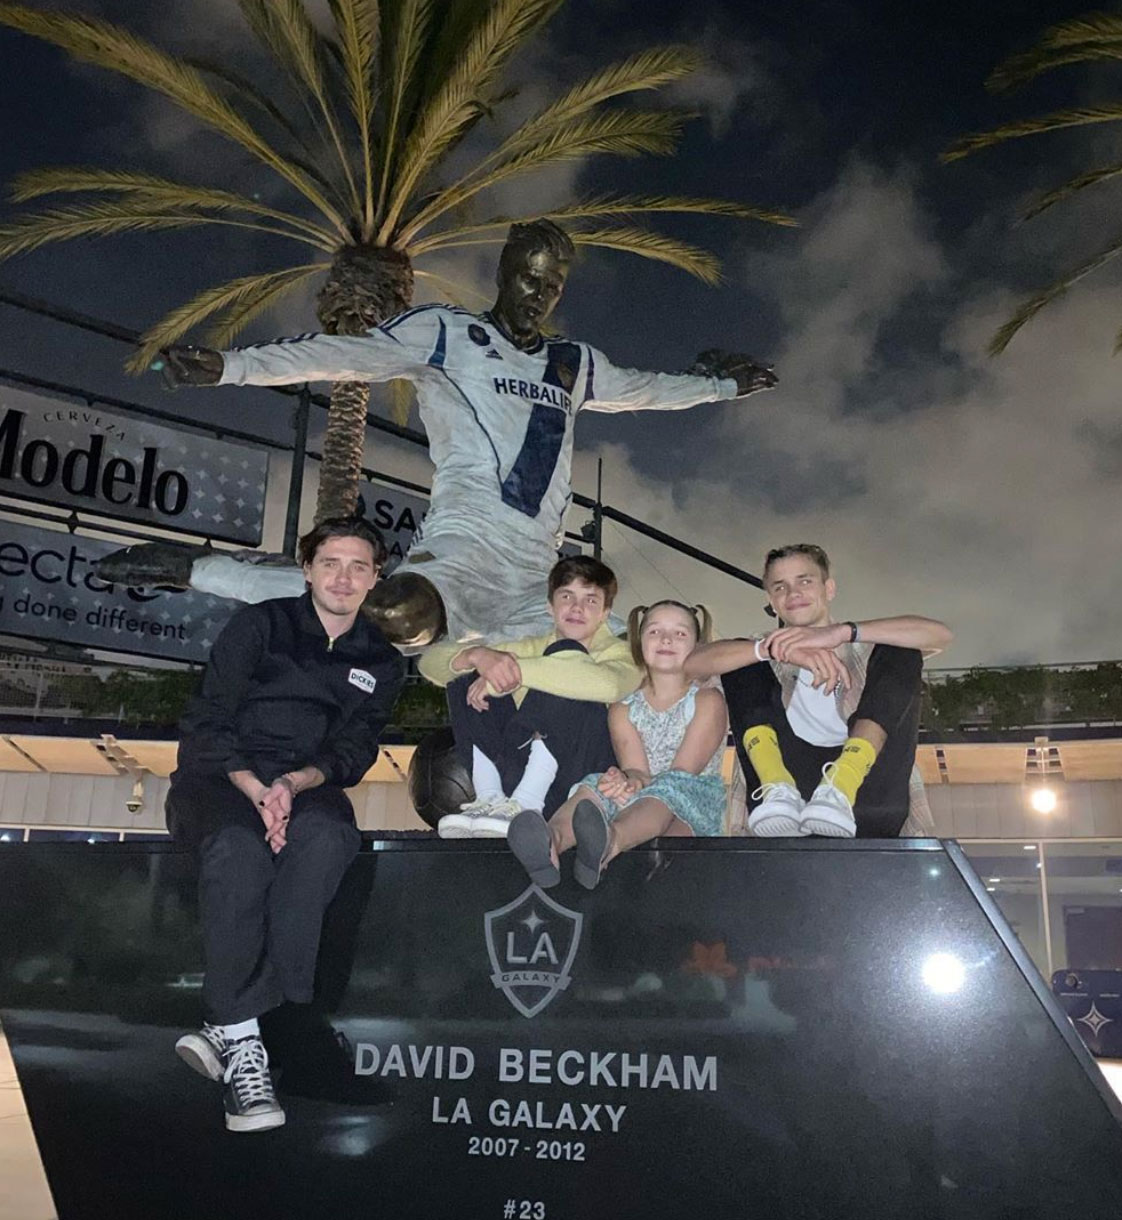 David Beckham and family at LA Galaxy statue